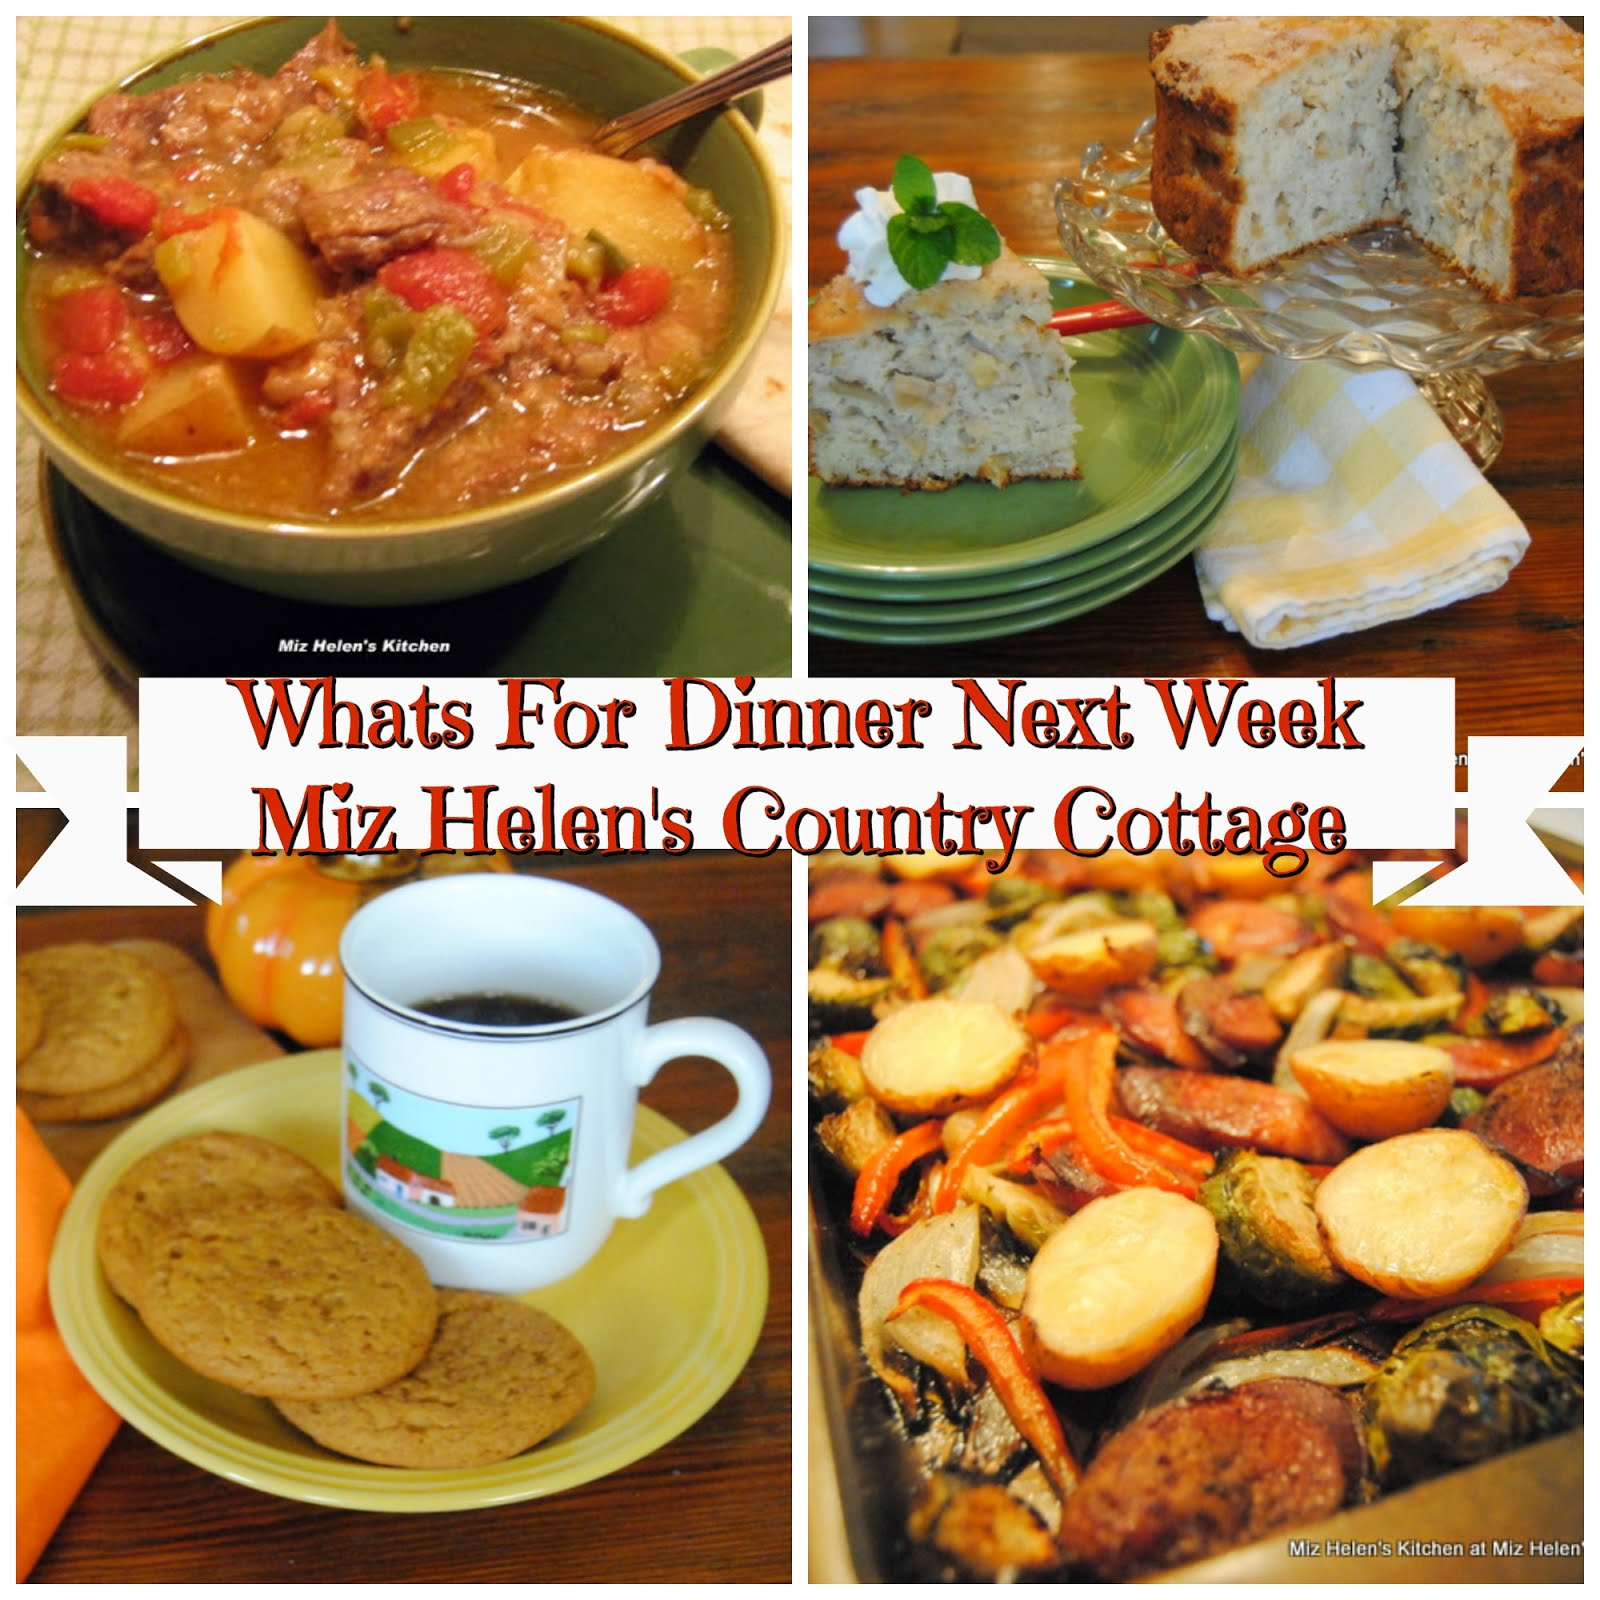 Whats For Dinner Next Week * Week of 10-13-19